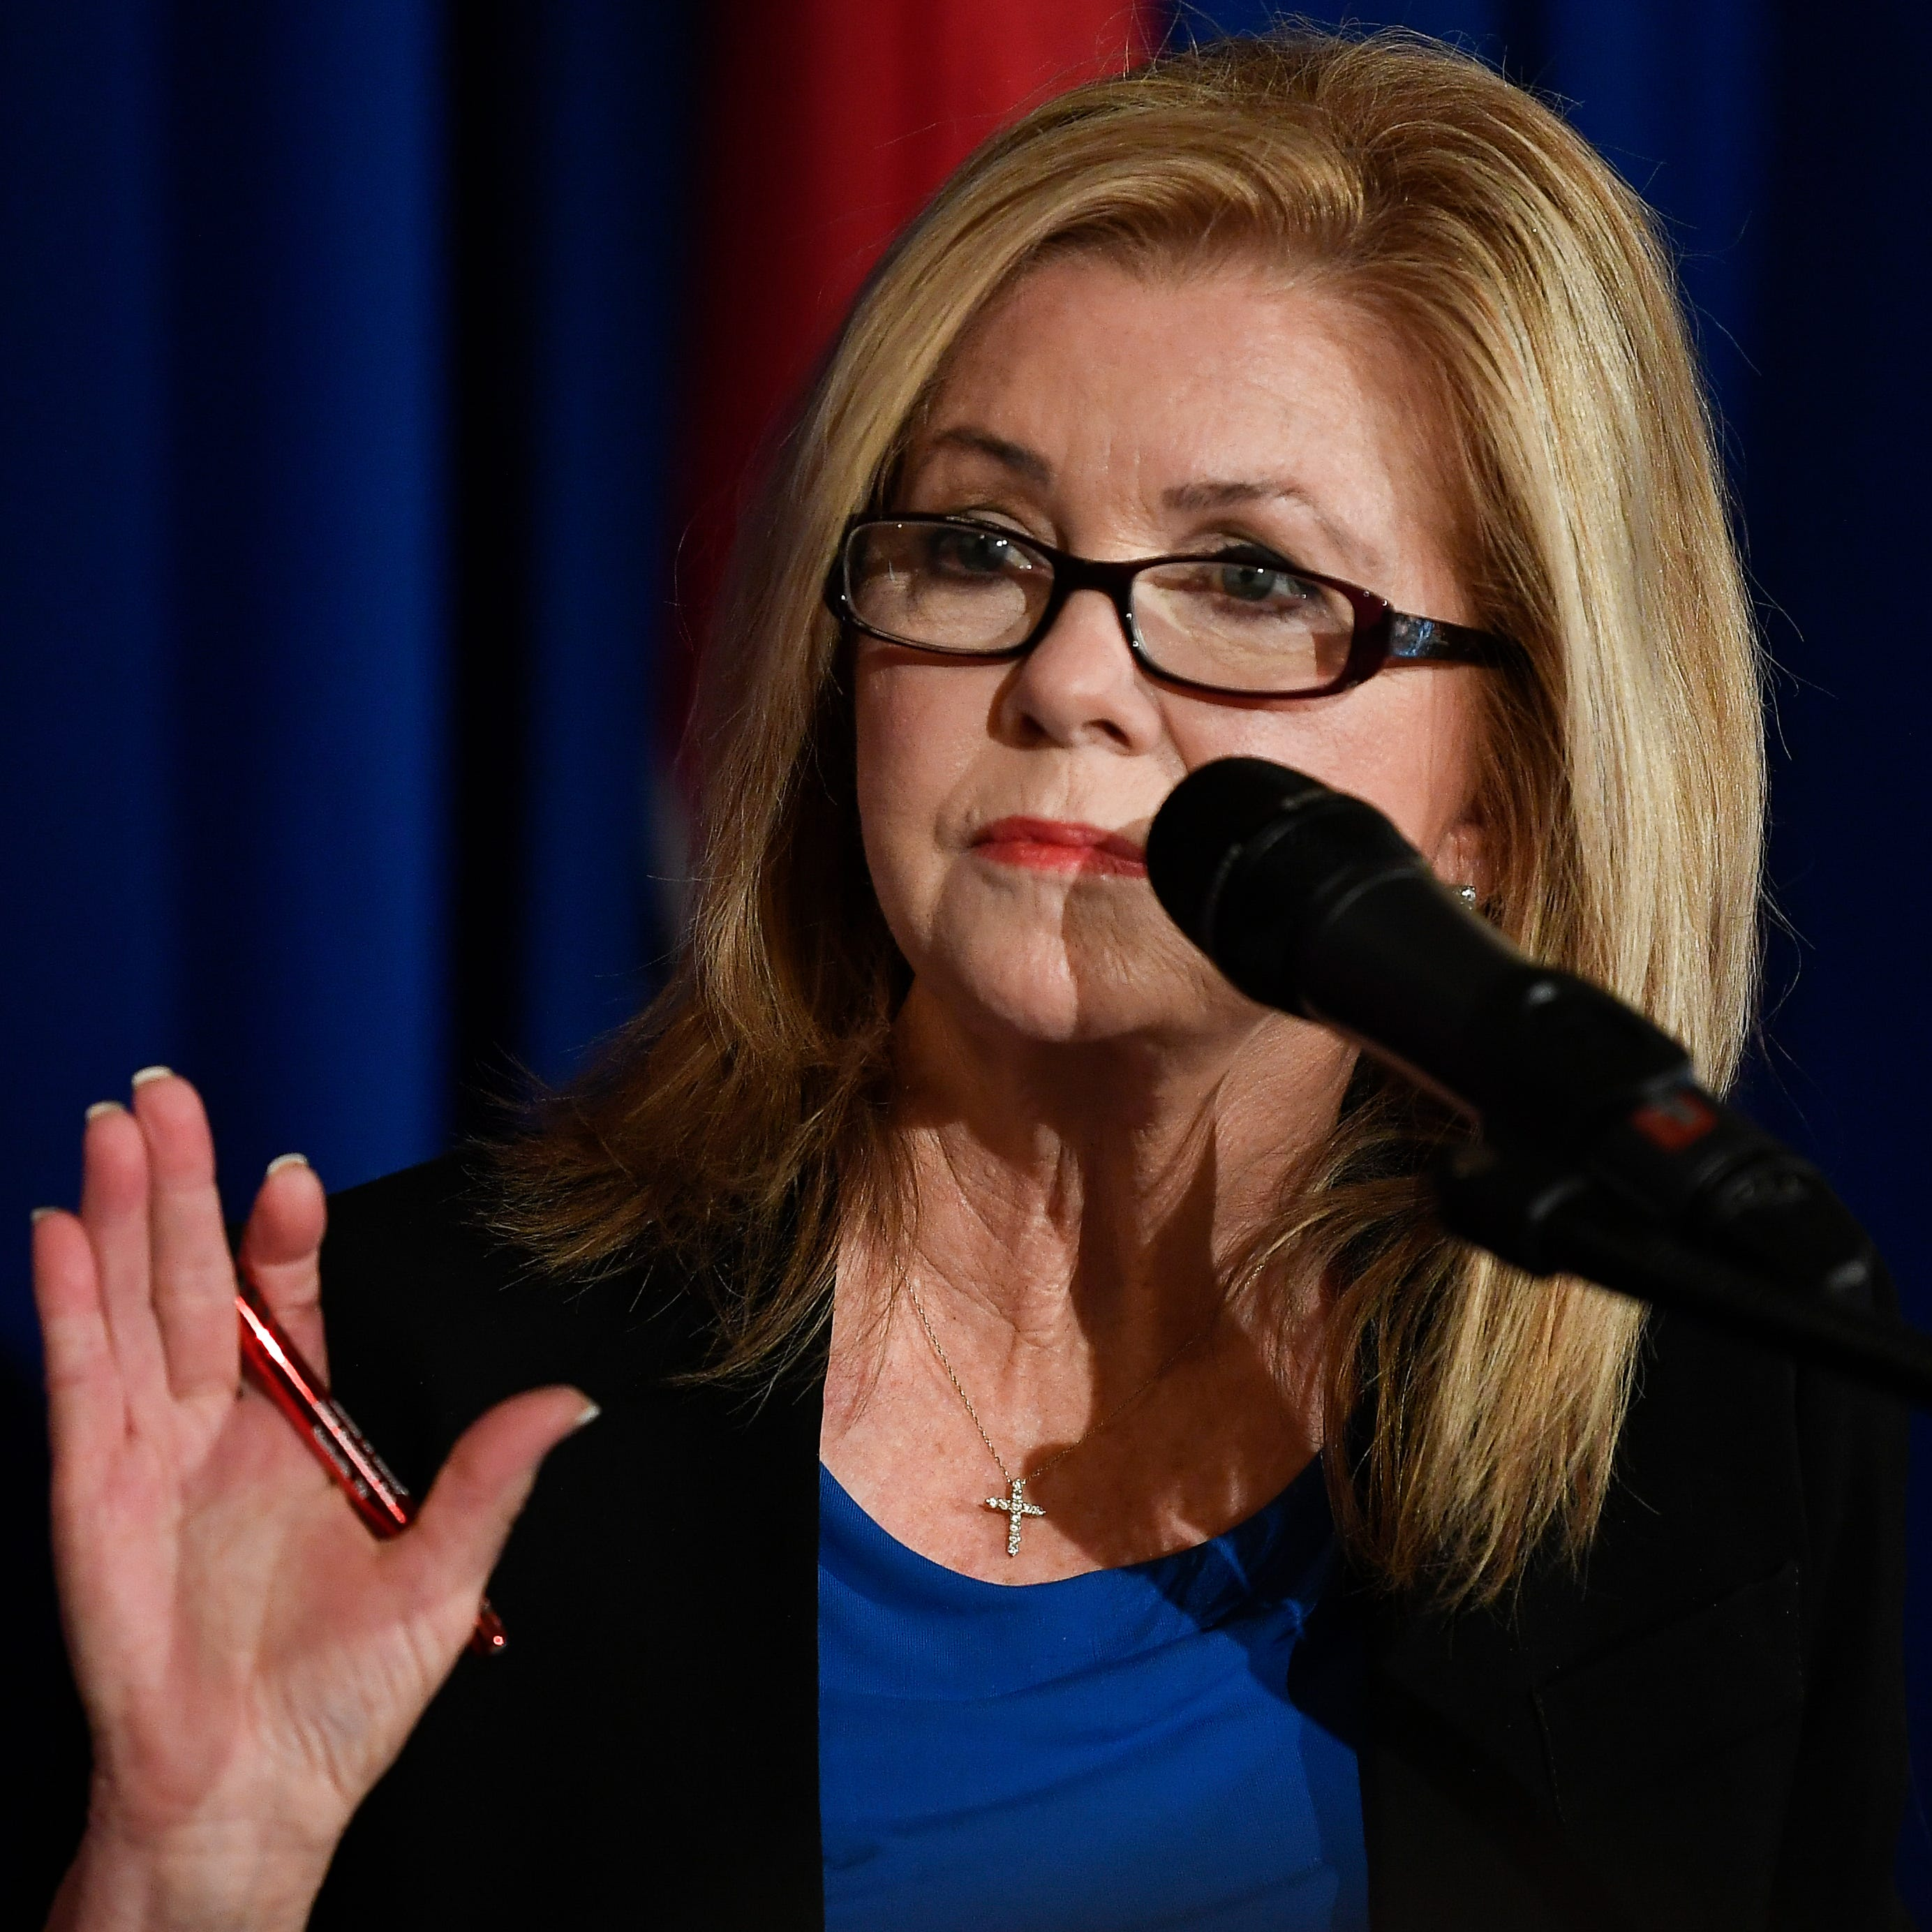 Ex-DEA agent: Consequences of Marsha Blackburn's opioid law not 'unintended' | Opinion